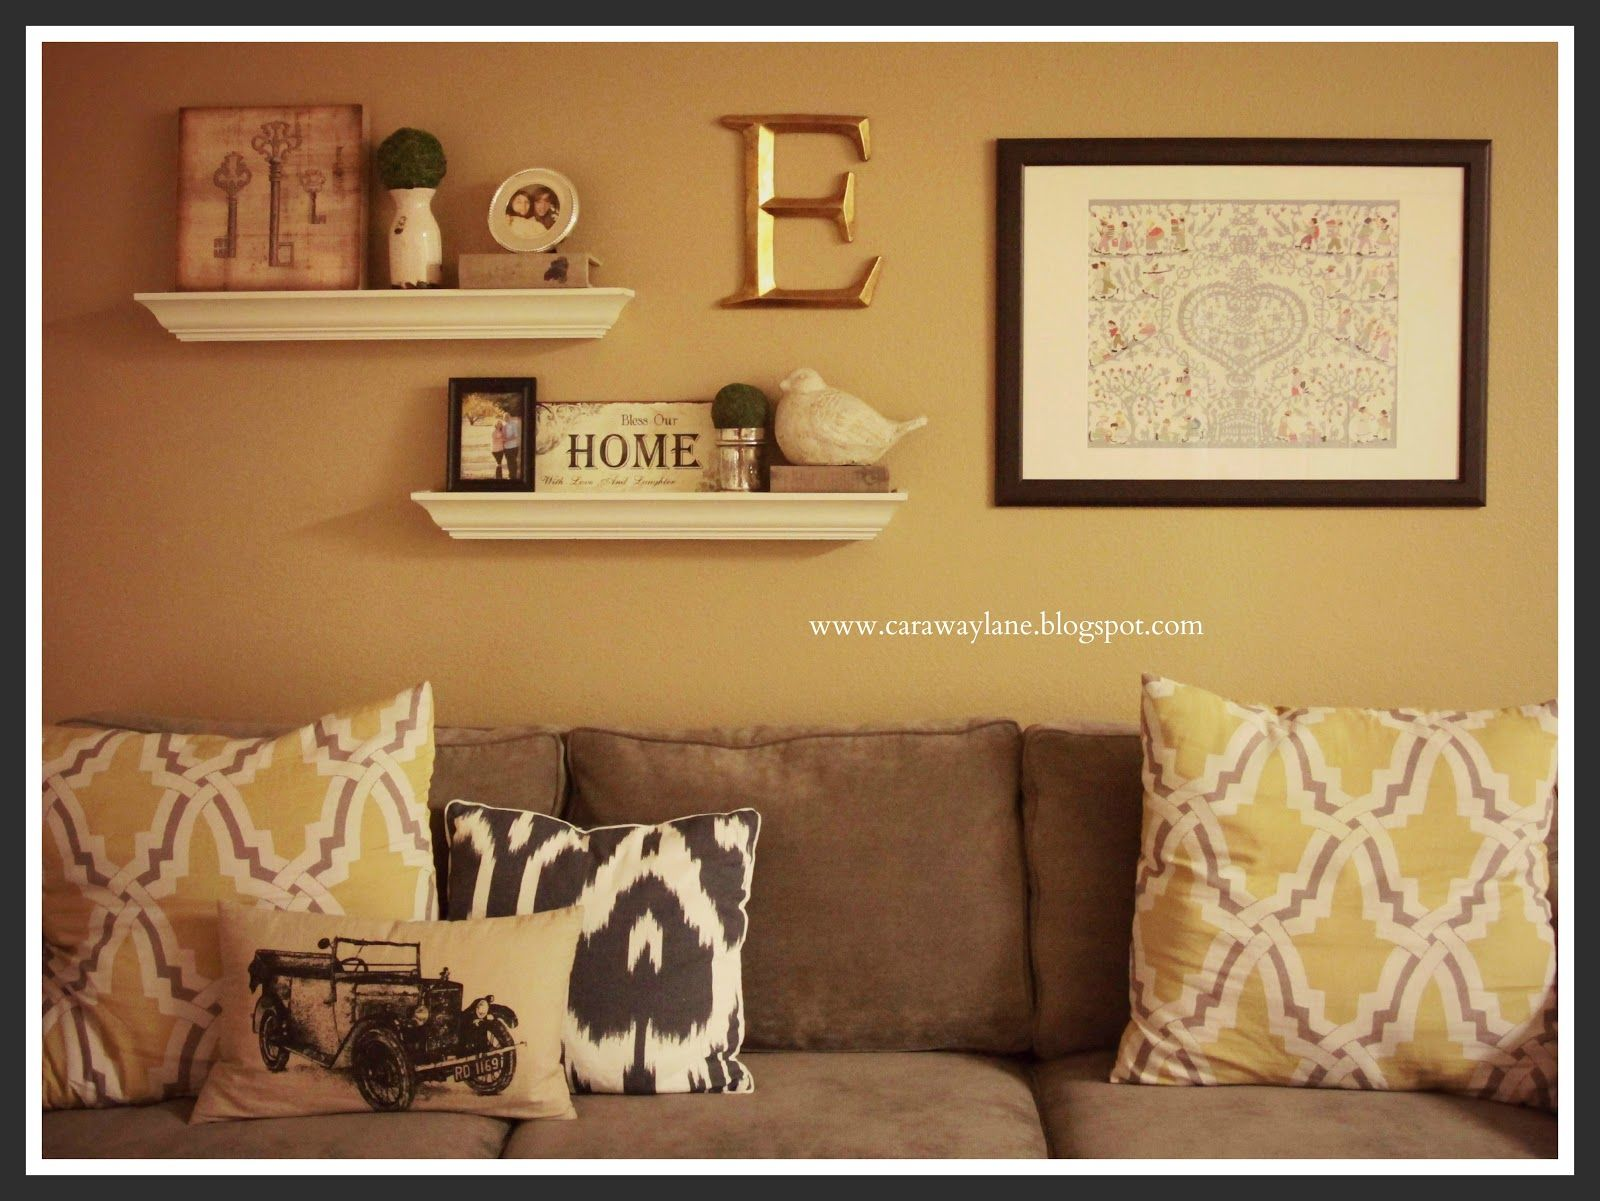 Decorate over a sofa above the couch wall decor future for Family room wall art